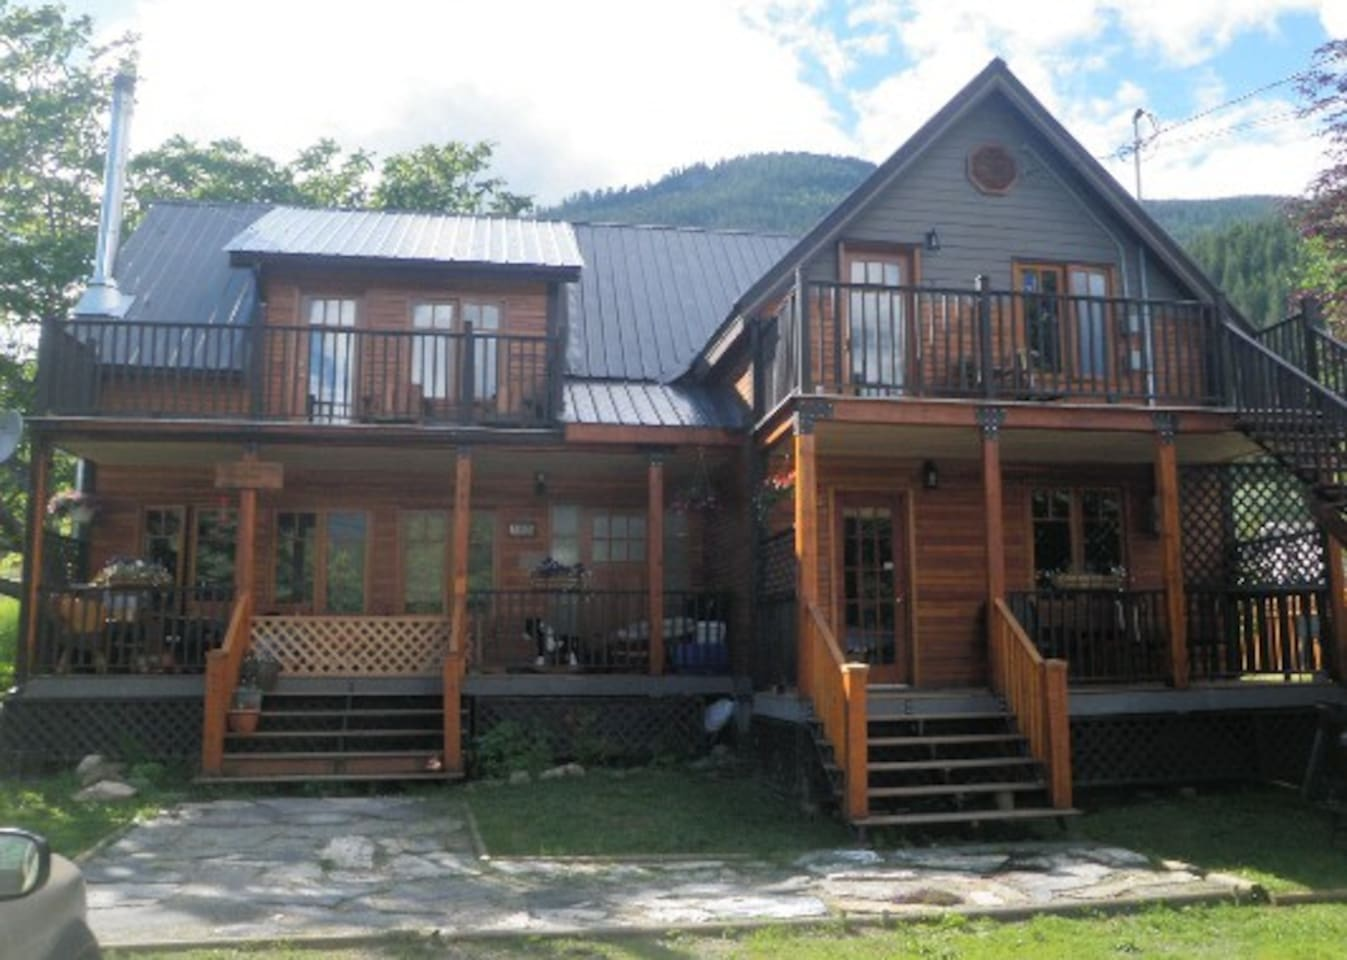 Welcome to the Kaslo Manor Lodge! Private entrances, decks and bathrooms for every unit. 6 person Jacuzzi. Originally built by one of the founders of Kaslo, George T. Kane, in 1896. It was completely restored in 2007. We are family and pet friendly.